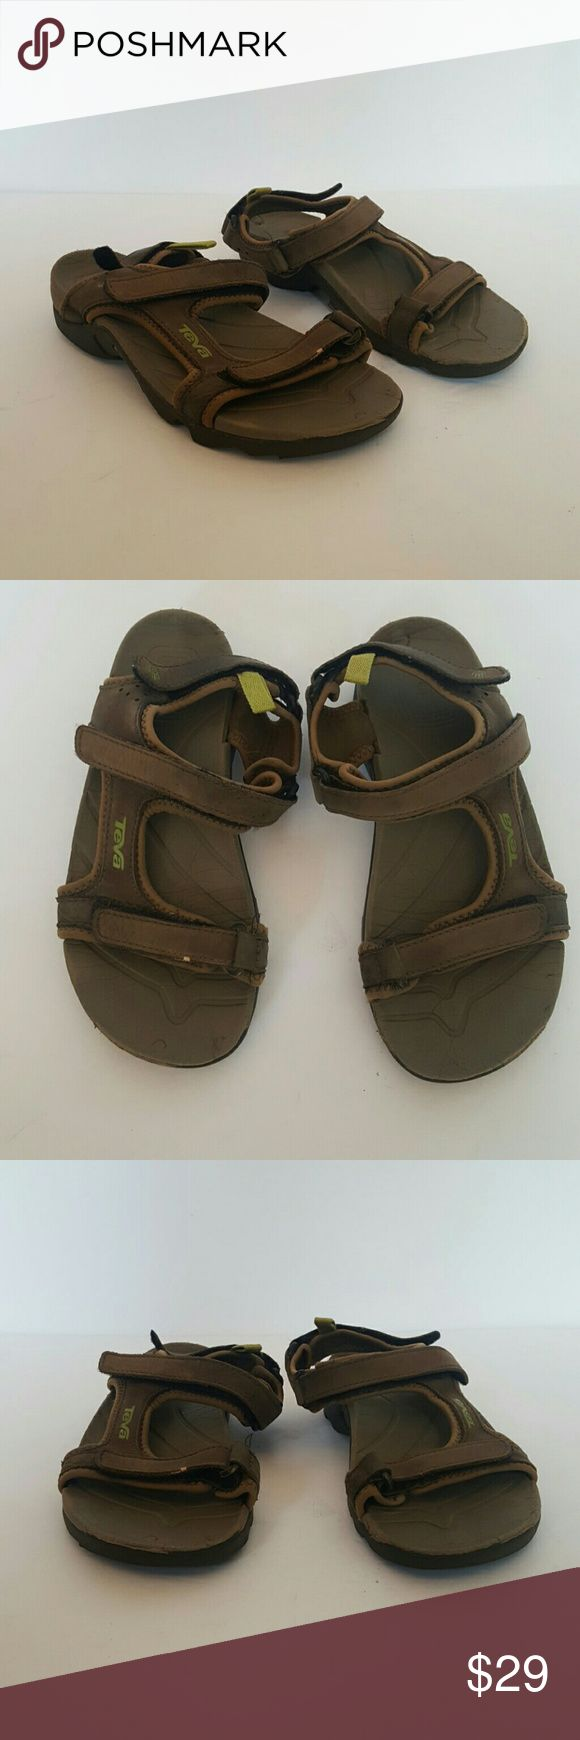 TEVA KIDS SIZE 2 SANDALS SHOES VELCRO STRAP TEVAS YOUTH SIZE 2 SANDALS OPEN TOE VELCRO SHOES SIZE 2 BROWN AND GREEN LEATHER Teva Shoes Sandals & Flip Flops